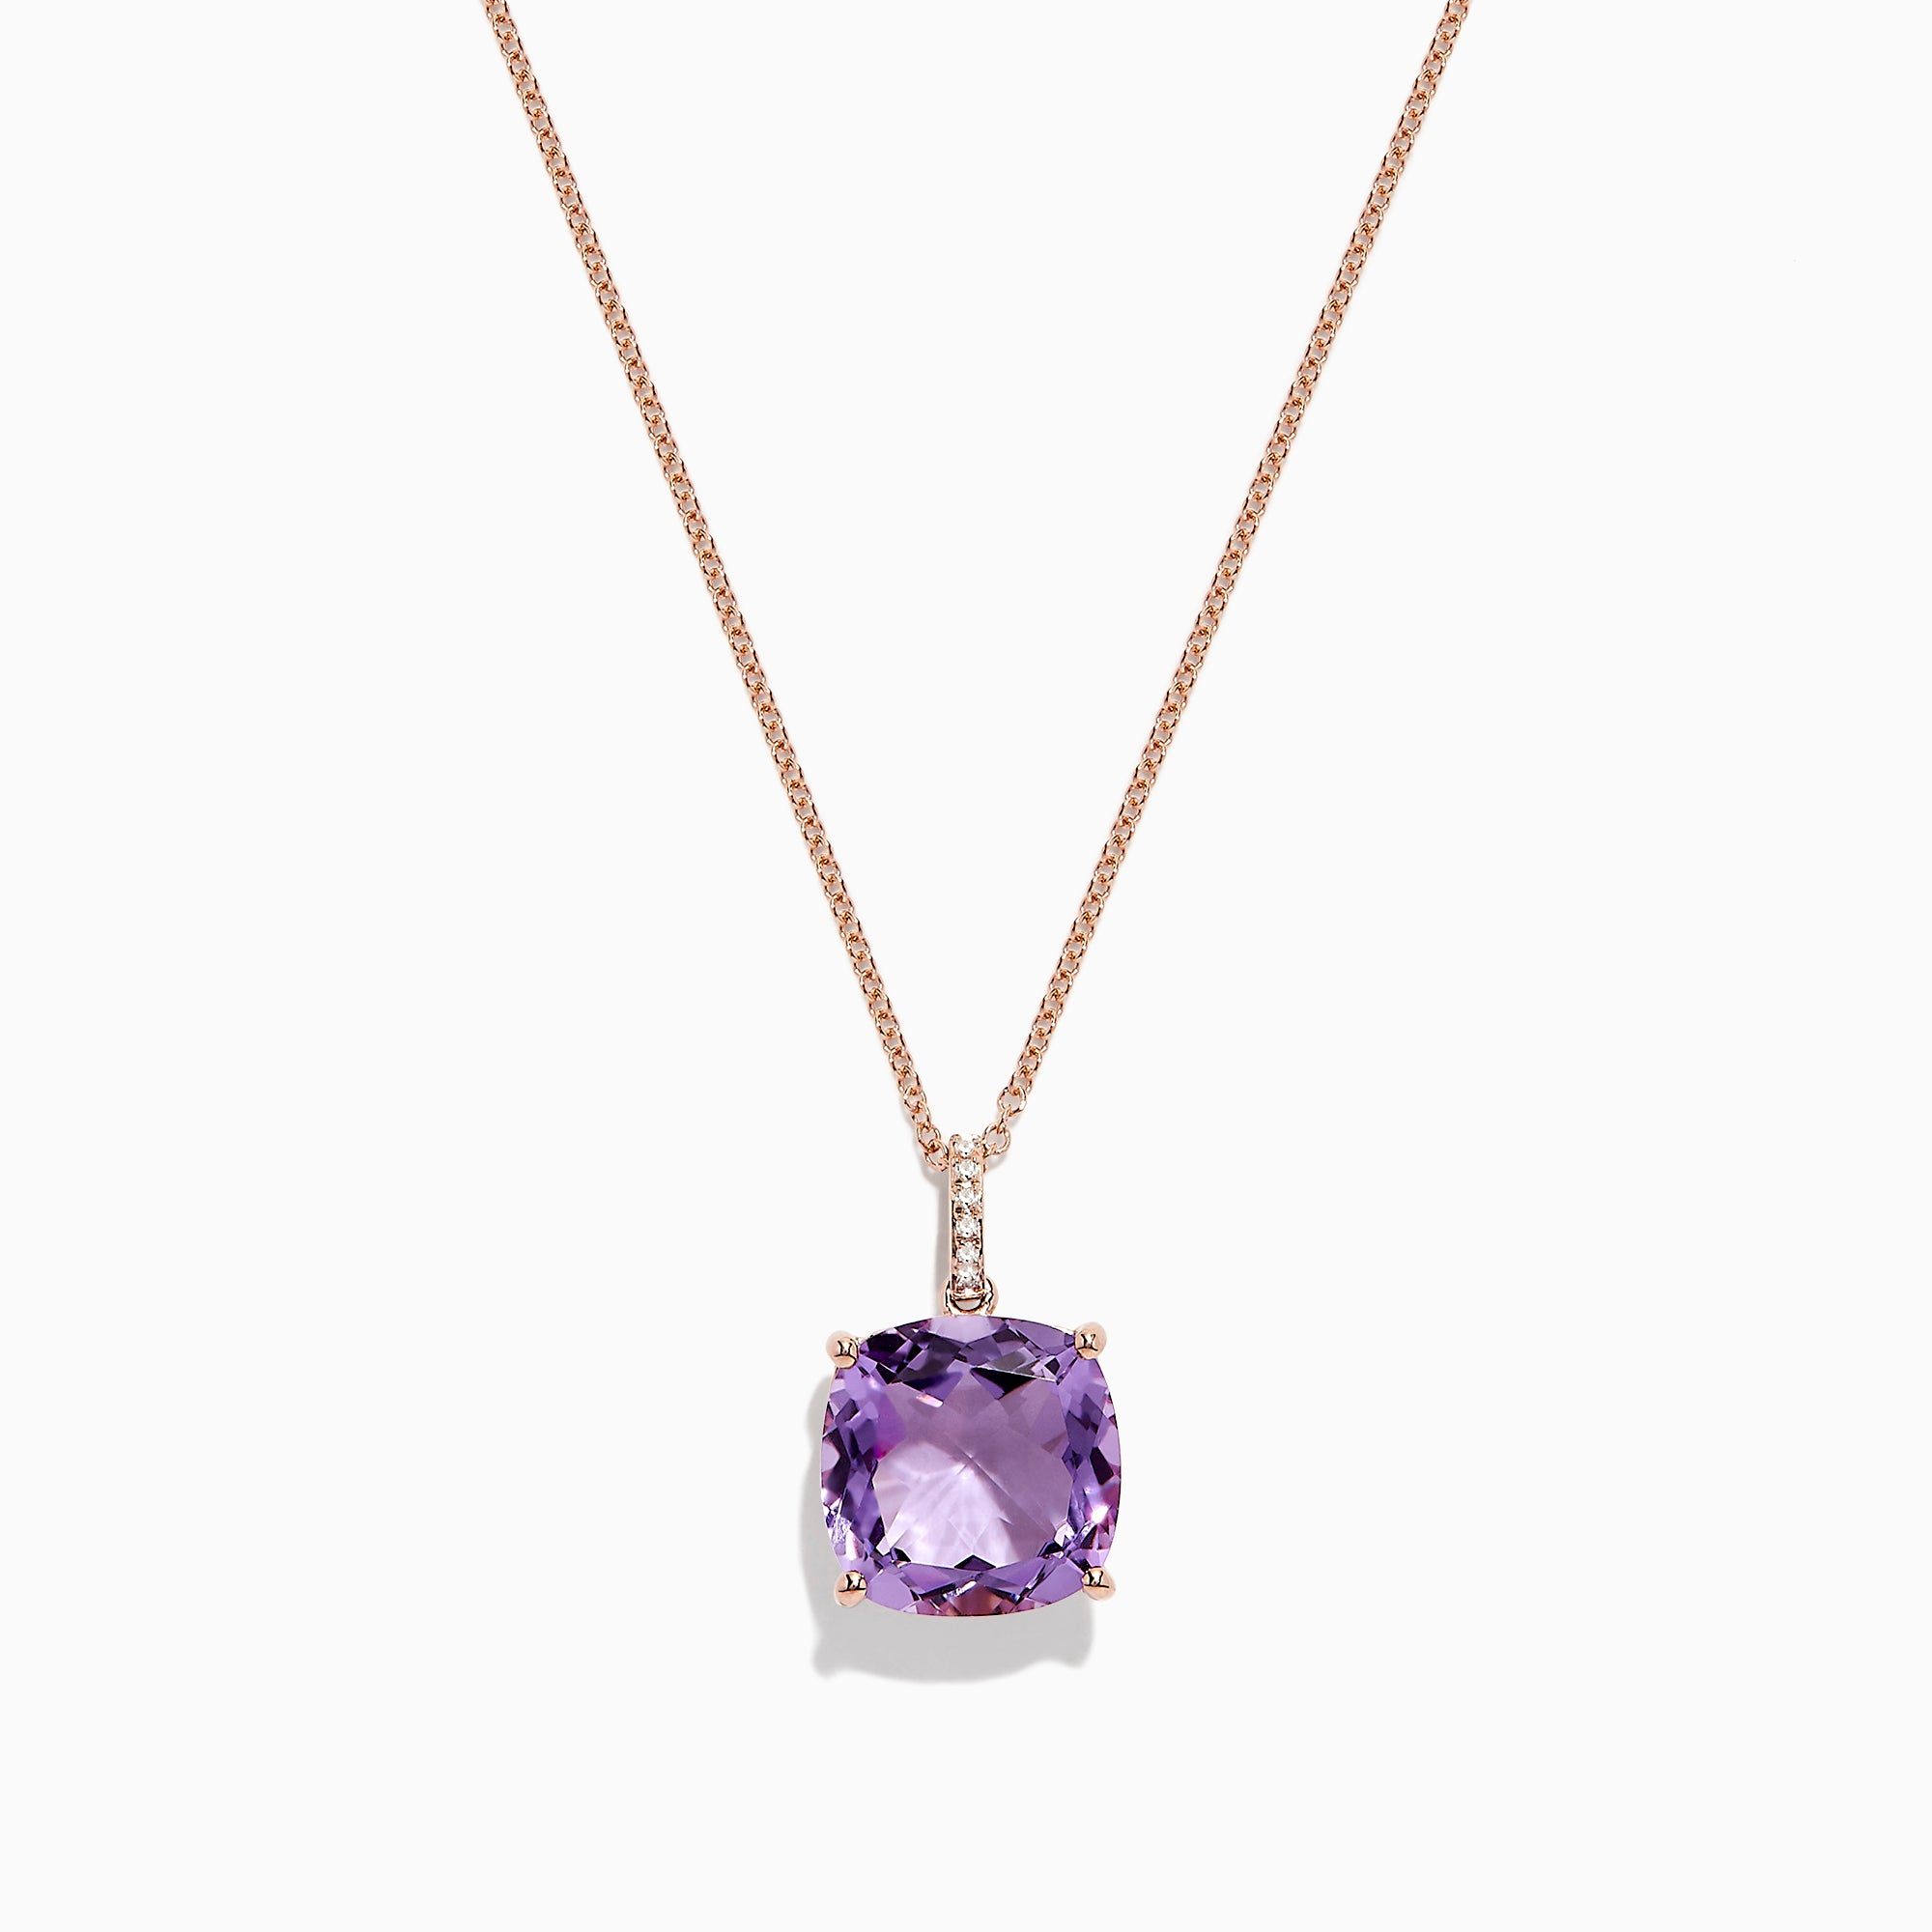 Effy 14K Rose Gold Amethyst and Diamond Pendant, 6.62 TCW